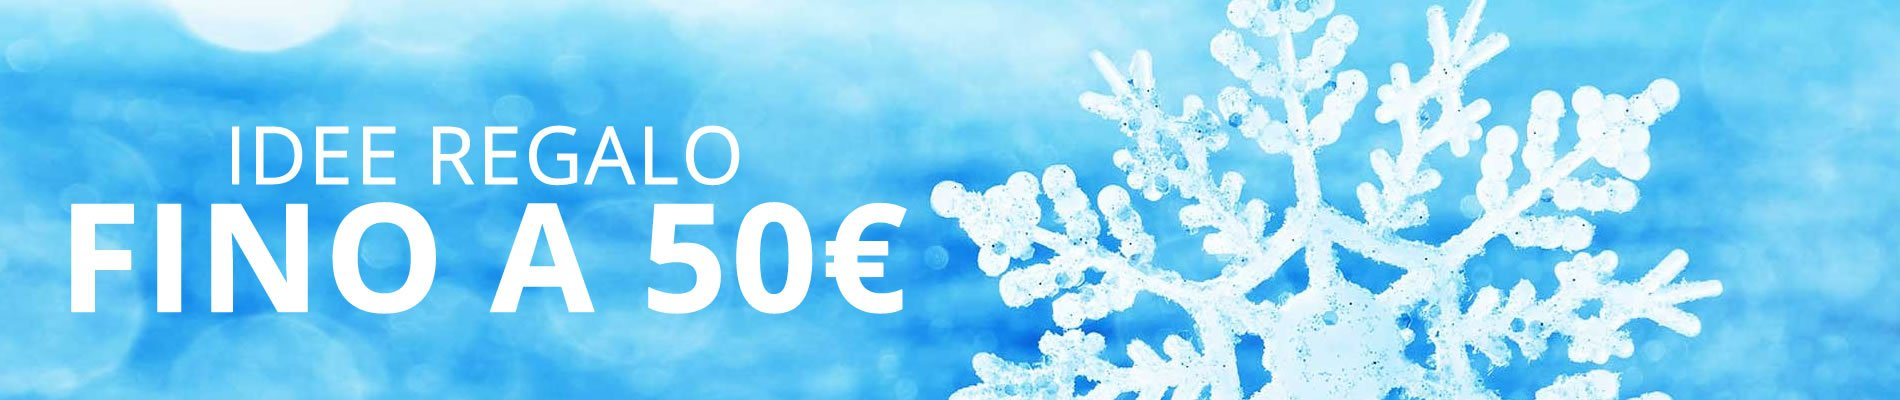 Gift ideas up to € 50